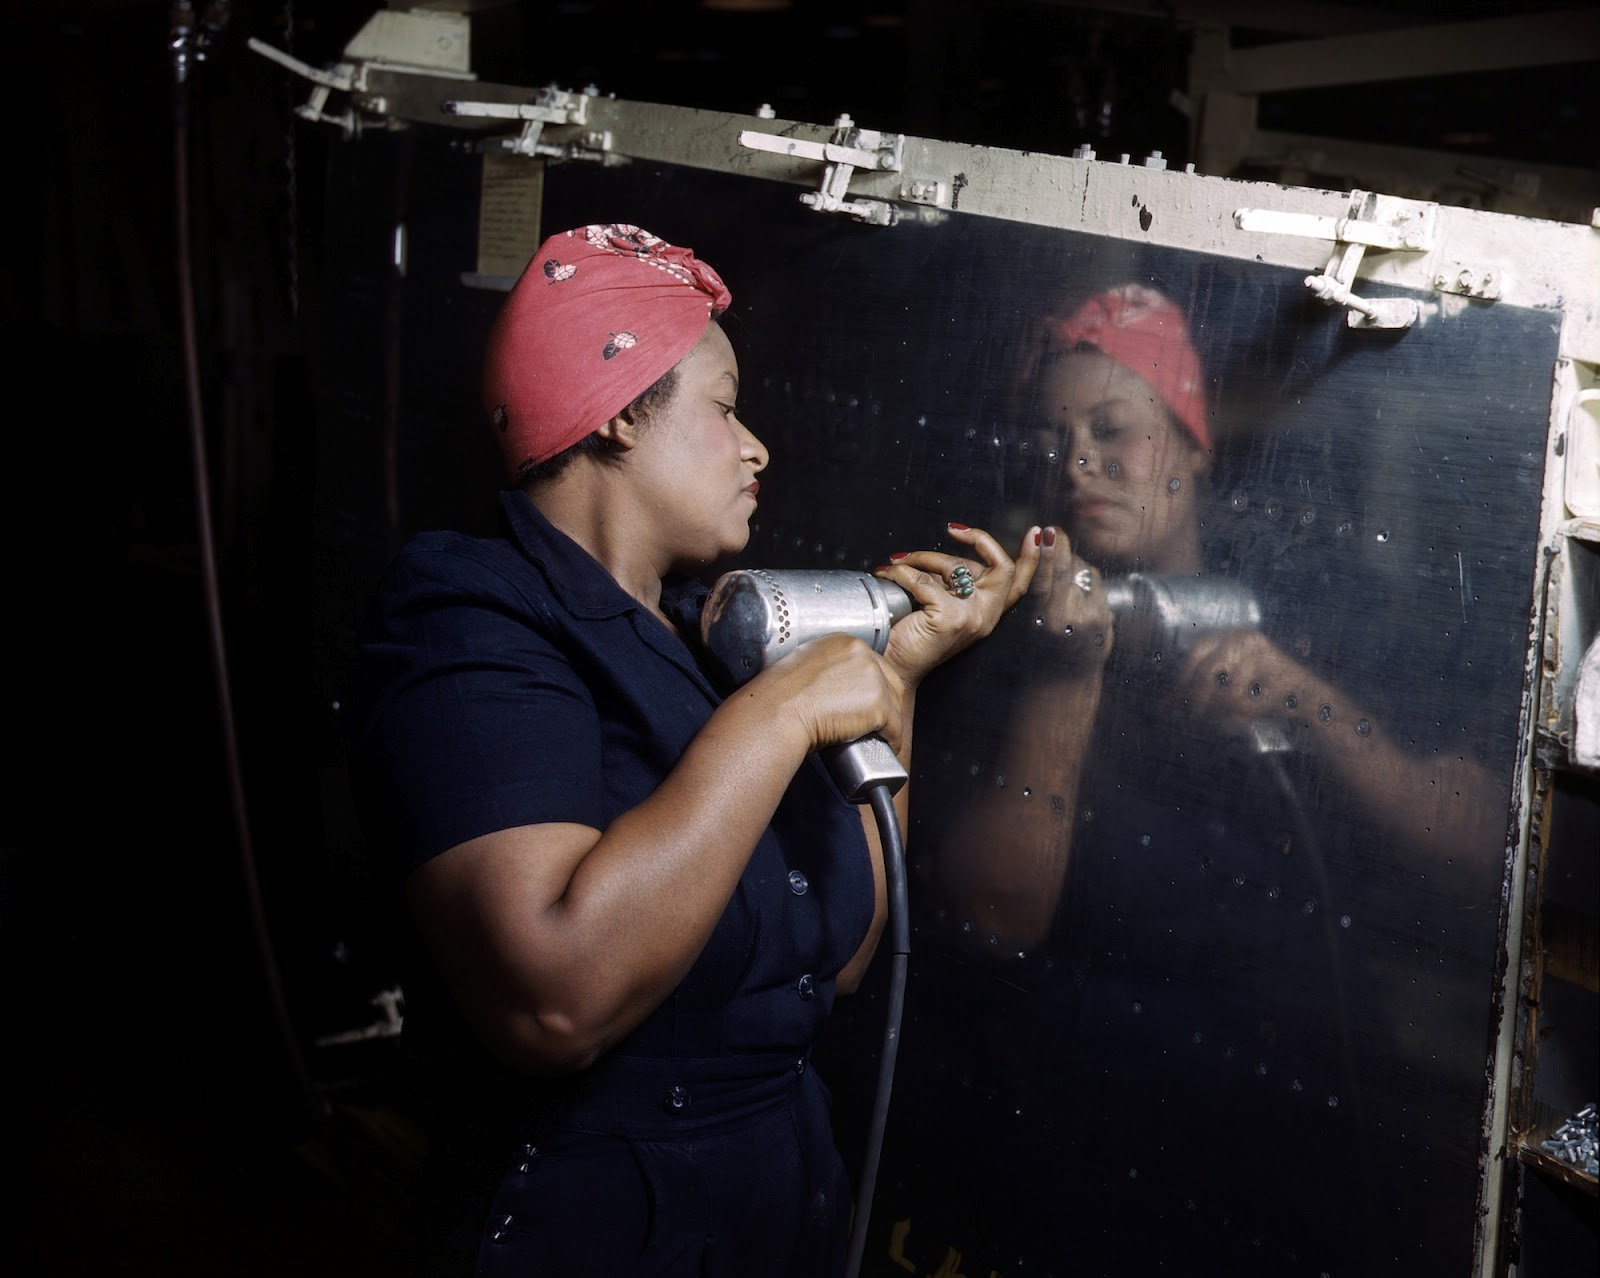 real-life Rosie the Riveter operating a hand drill at Vultee ...